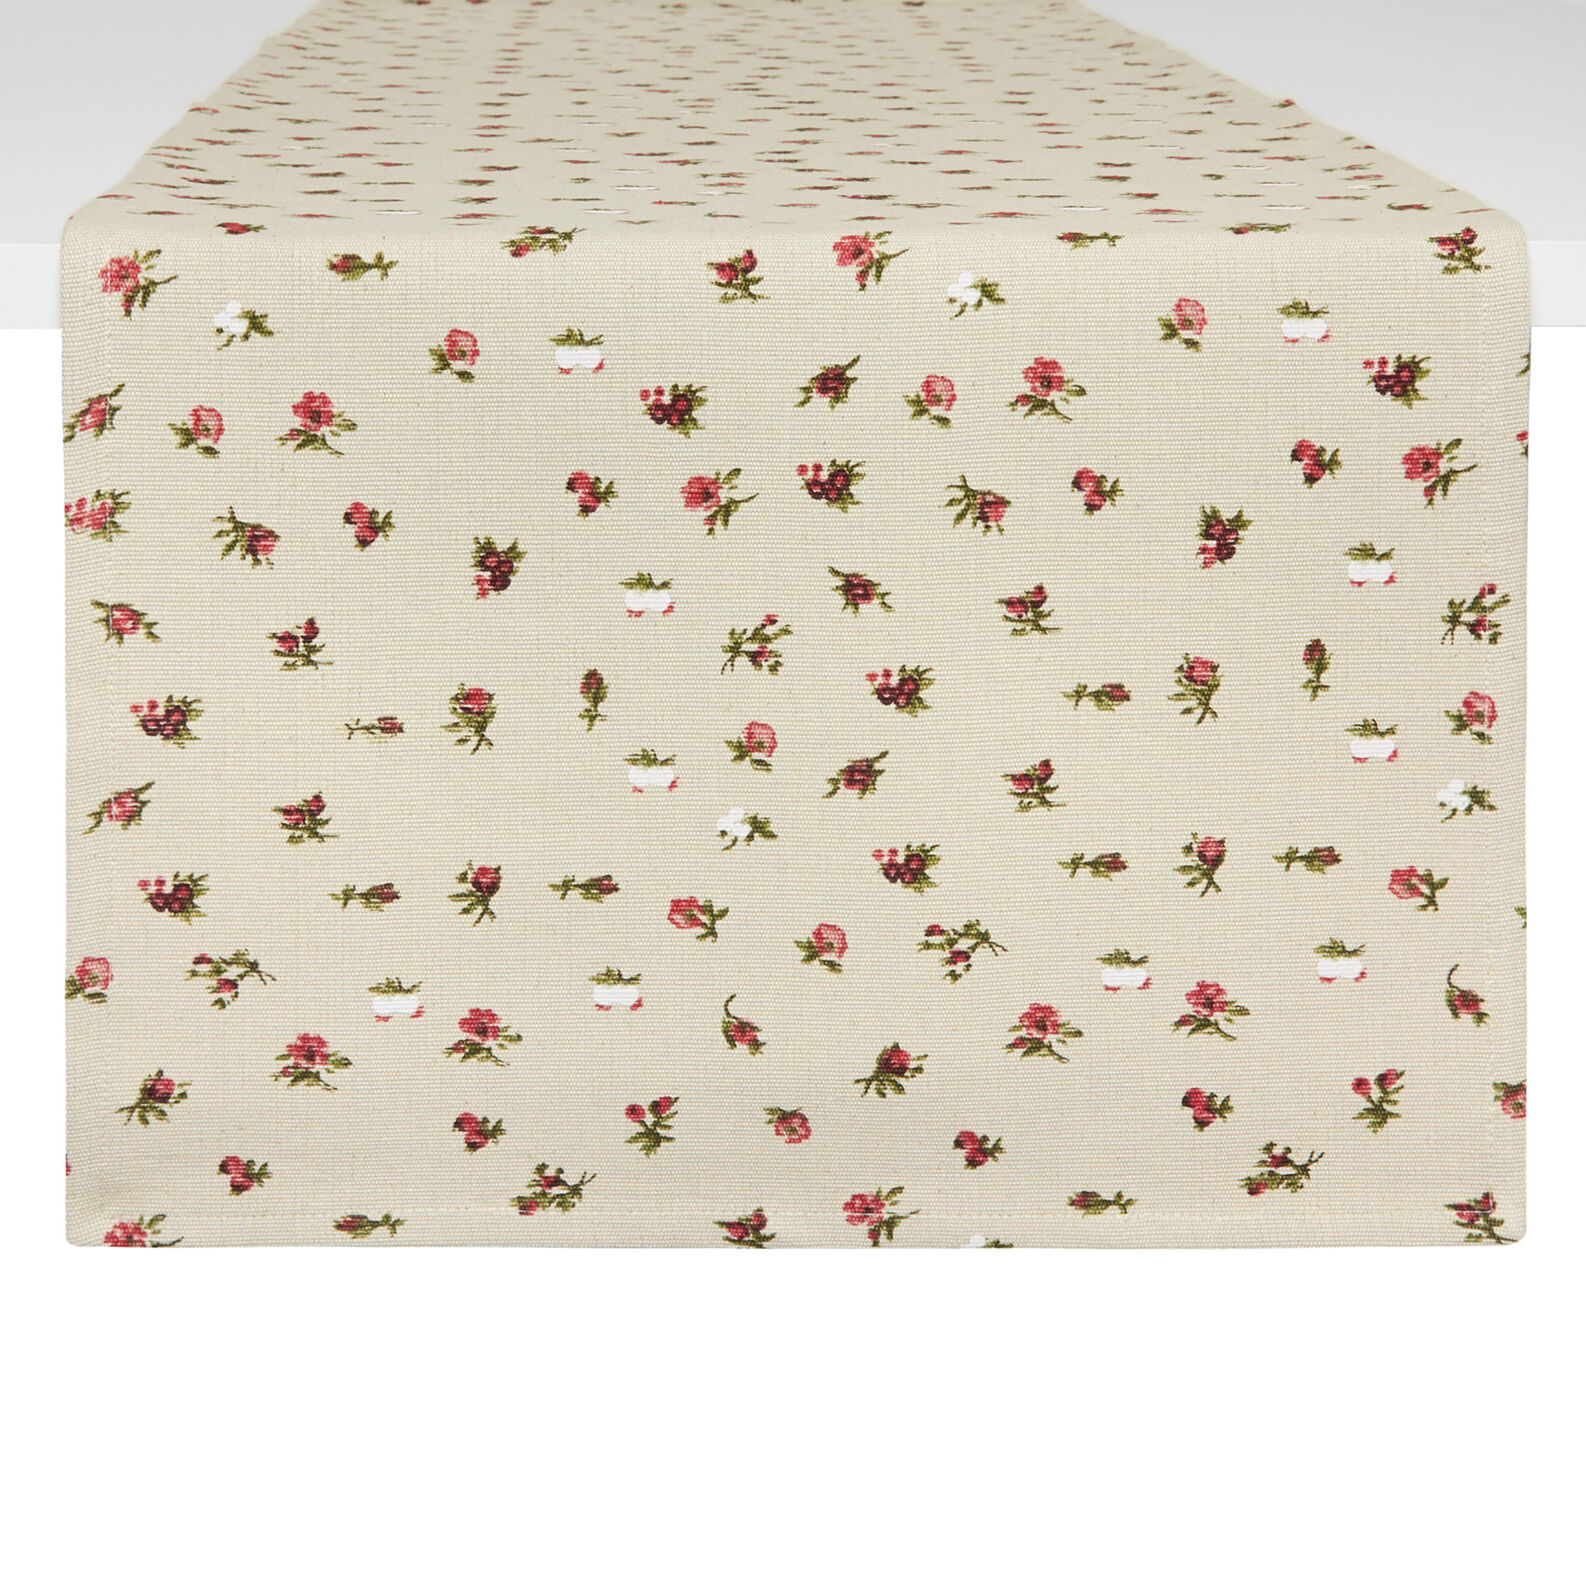 Floral cotton table runner